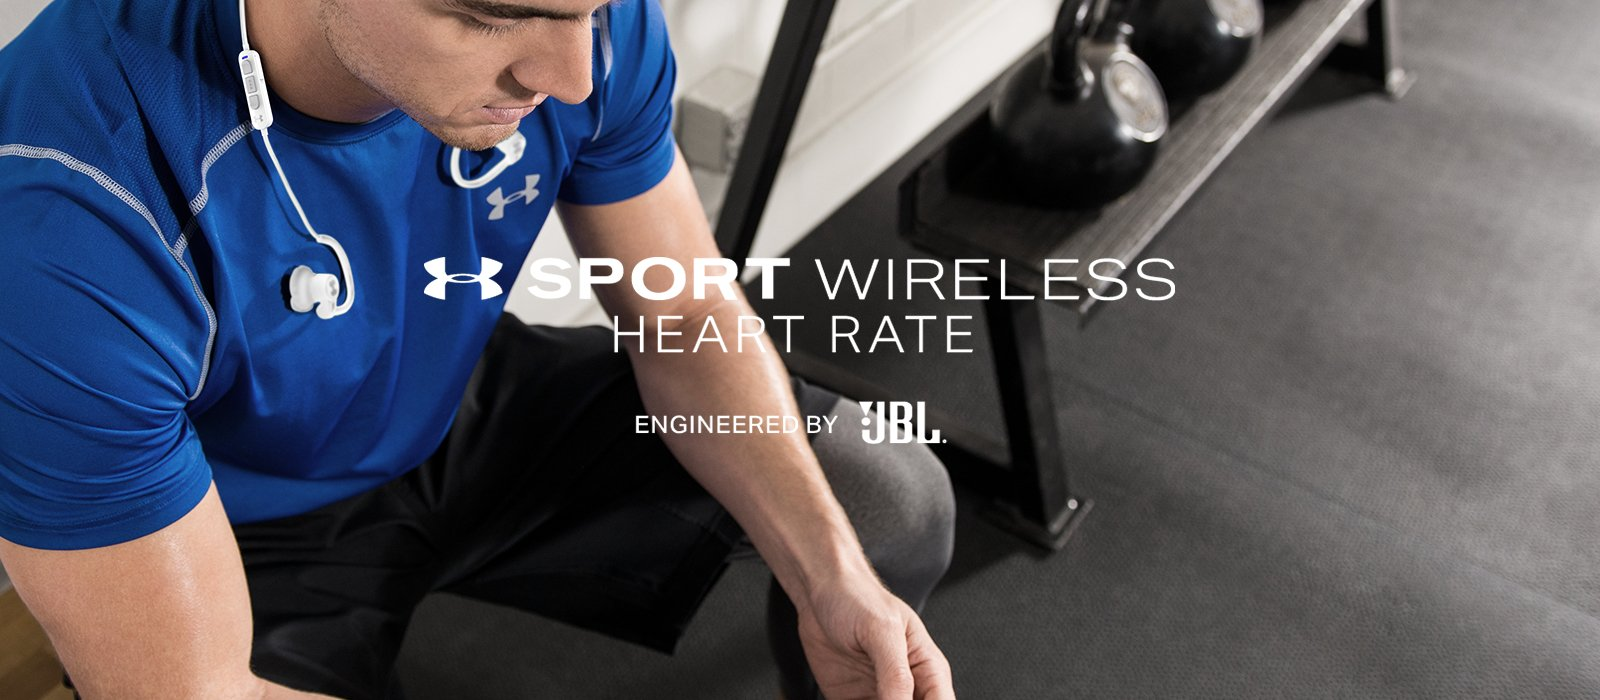 UA Sport Wireless Engineered By JBL